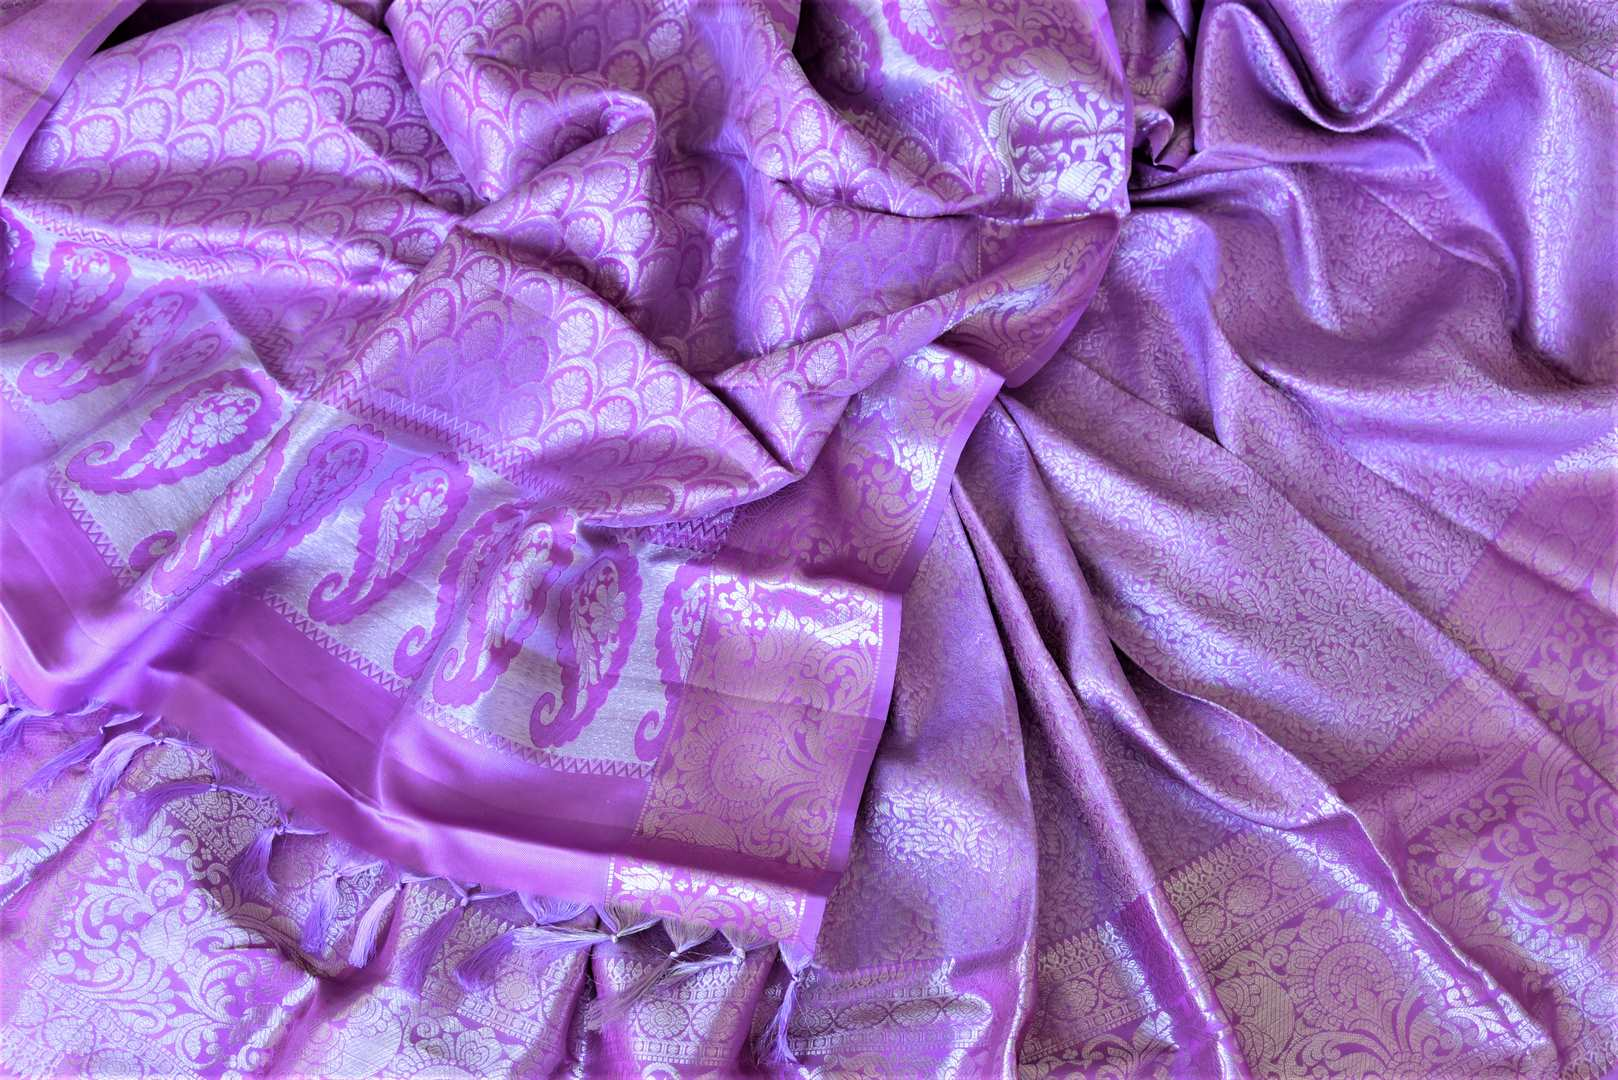 Shop stunning lavender silver zari work Kanjivaram sari online in USA. Look elegant at parties and special occasions in handwoven silk sarees, designer sarees with blouse, embroidered saris from Pure Elegance Indian luxury clothing store in USA.-details